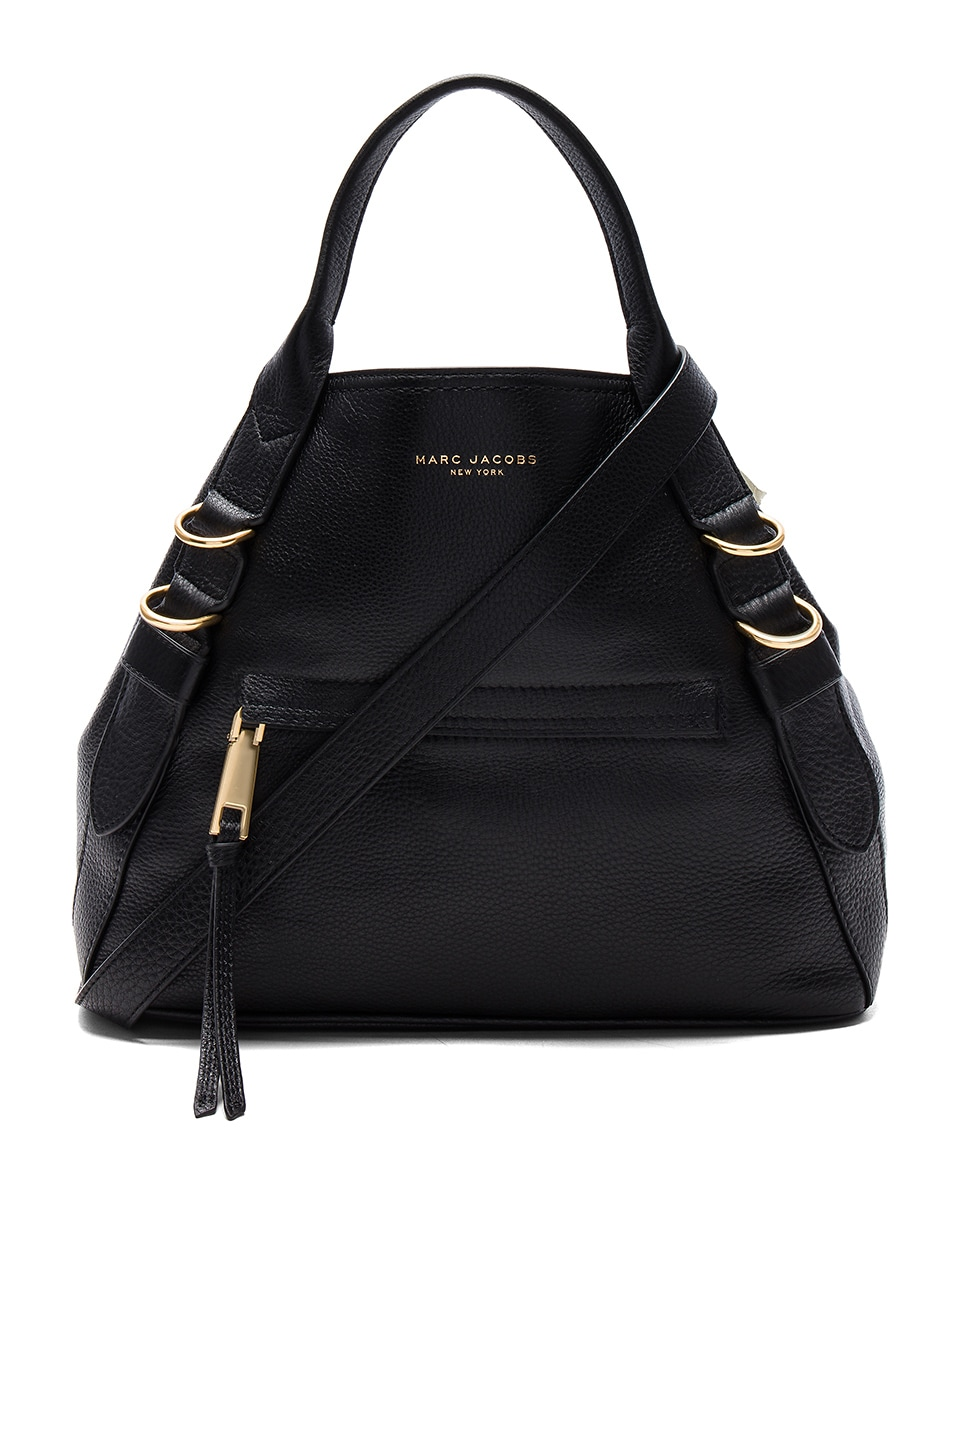 Marc Jacobs The Anchor Bag in Black | REVOLVE